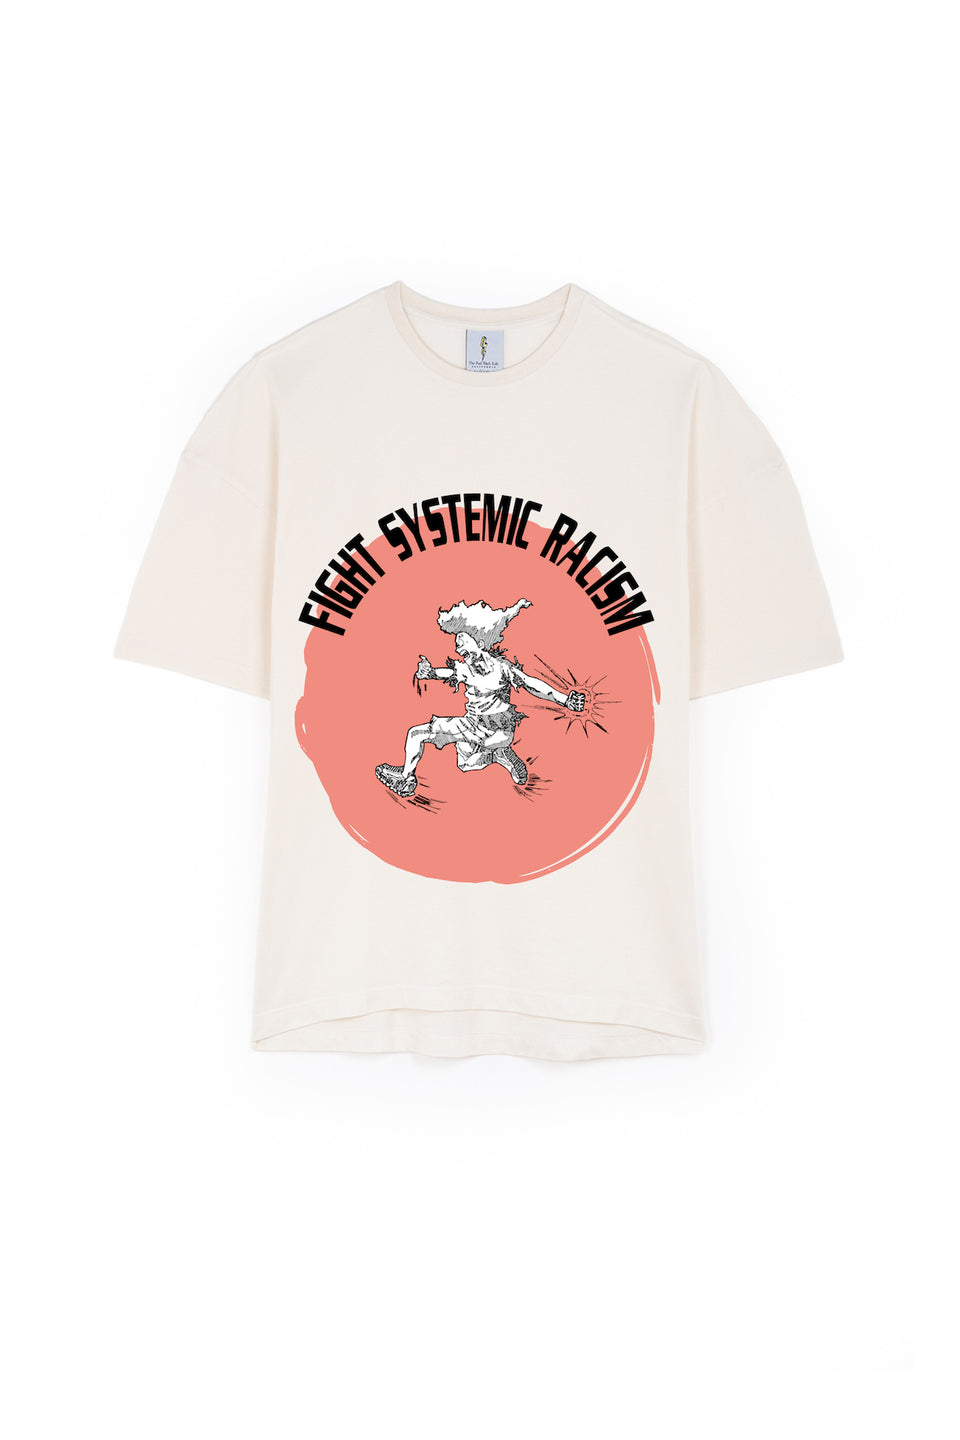 End Systemic Racism T-Shirt